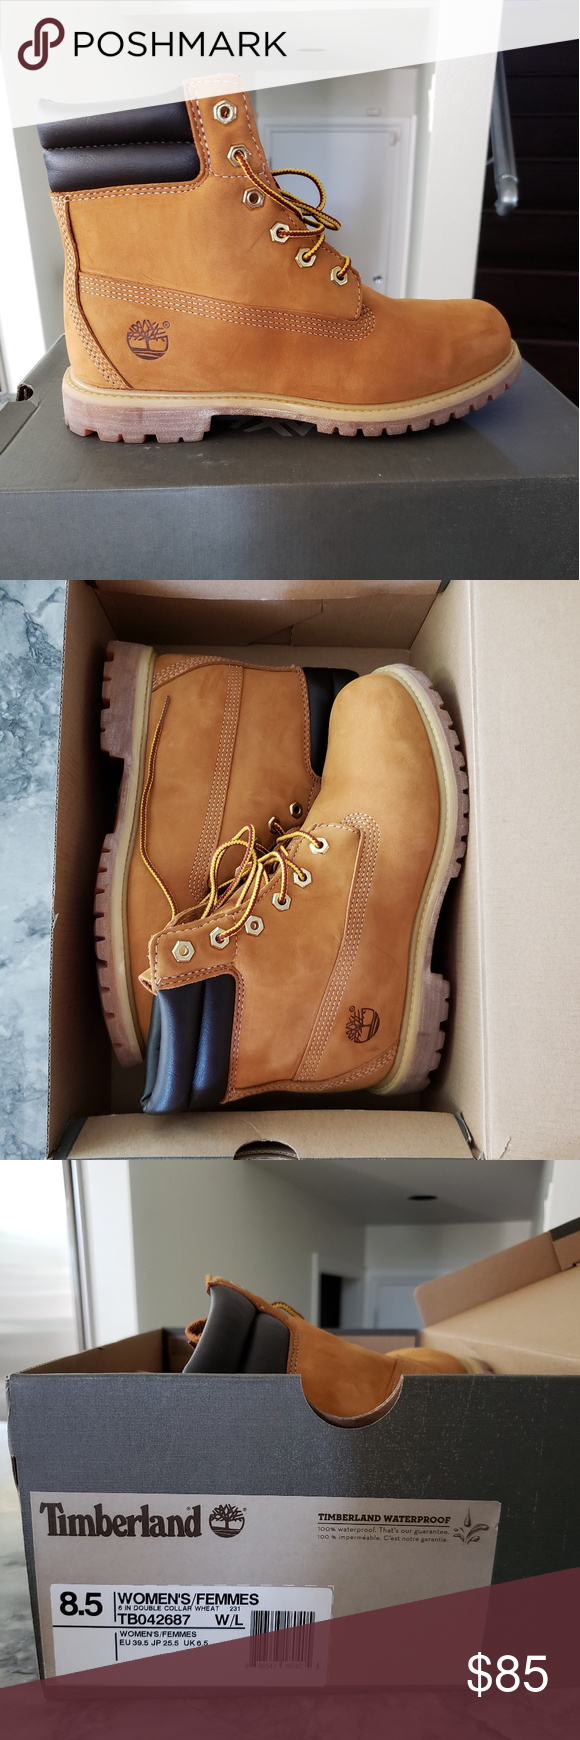 Timberland boots, Timberlands shoes, Boots